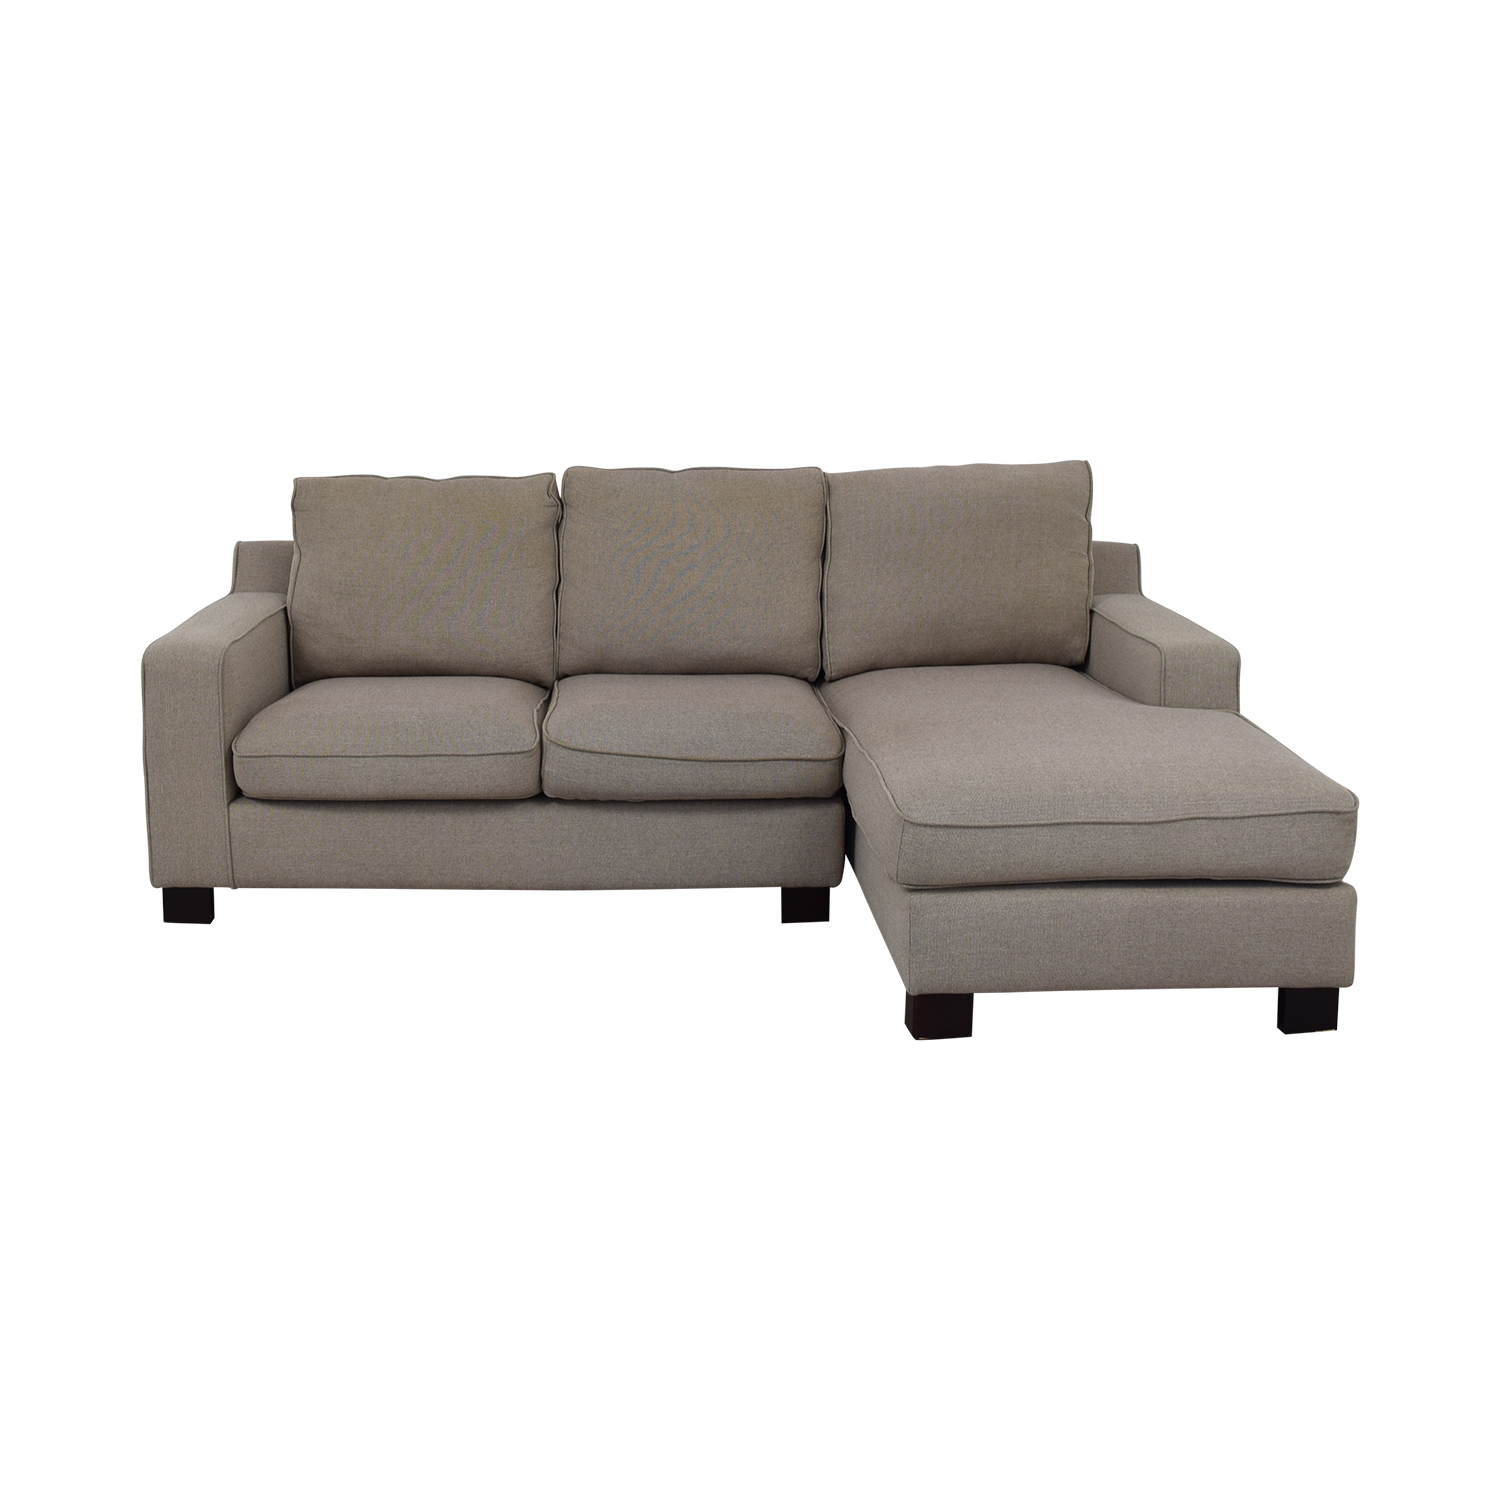 Abbyson Abbyson Beverly Sectional Sofa discount